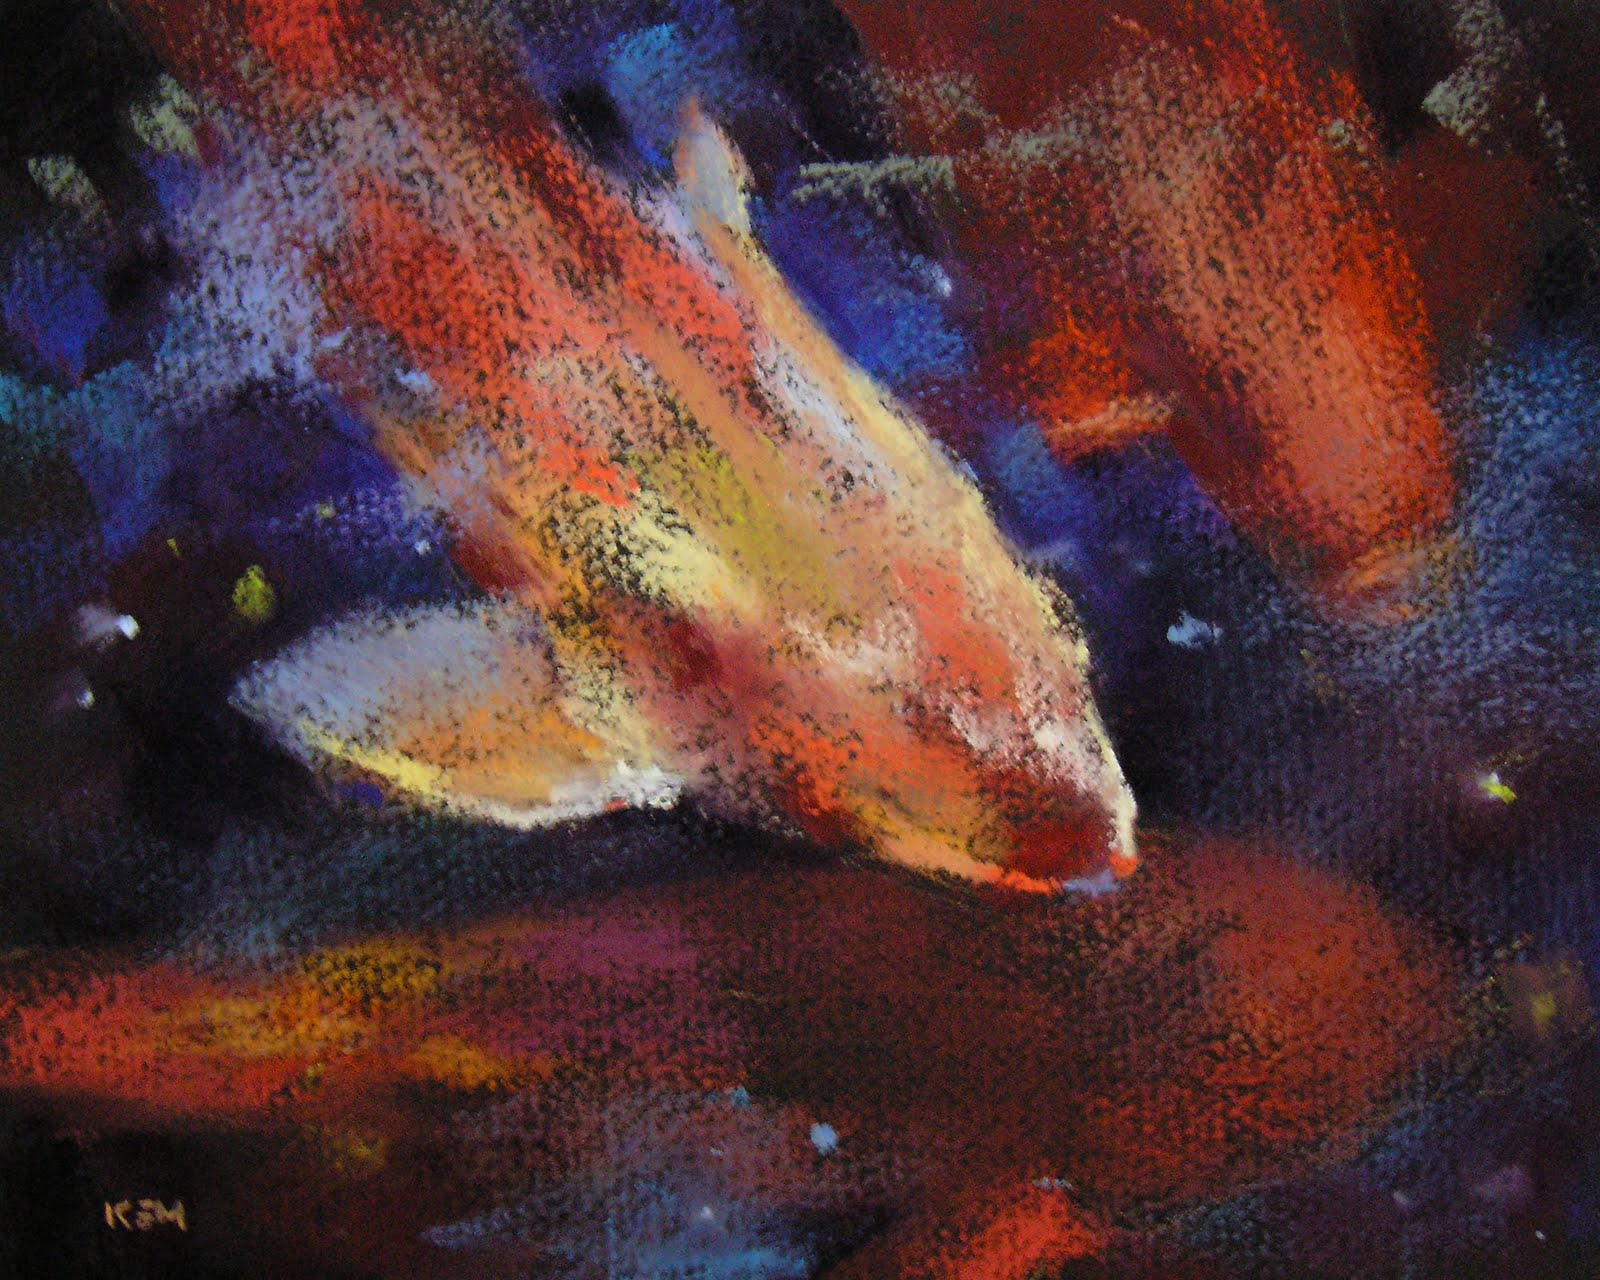 """Koi Pastel on Black Paper 8x10"" original fine art by Karen Margulis"